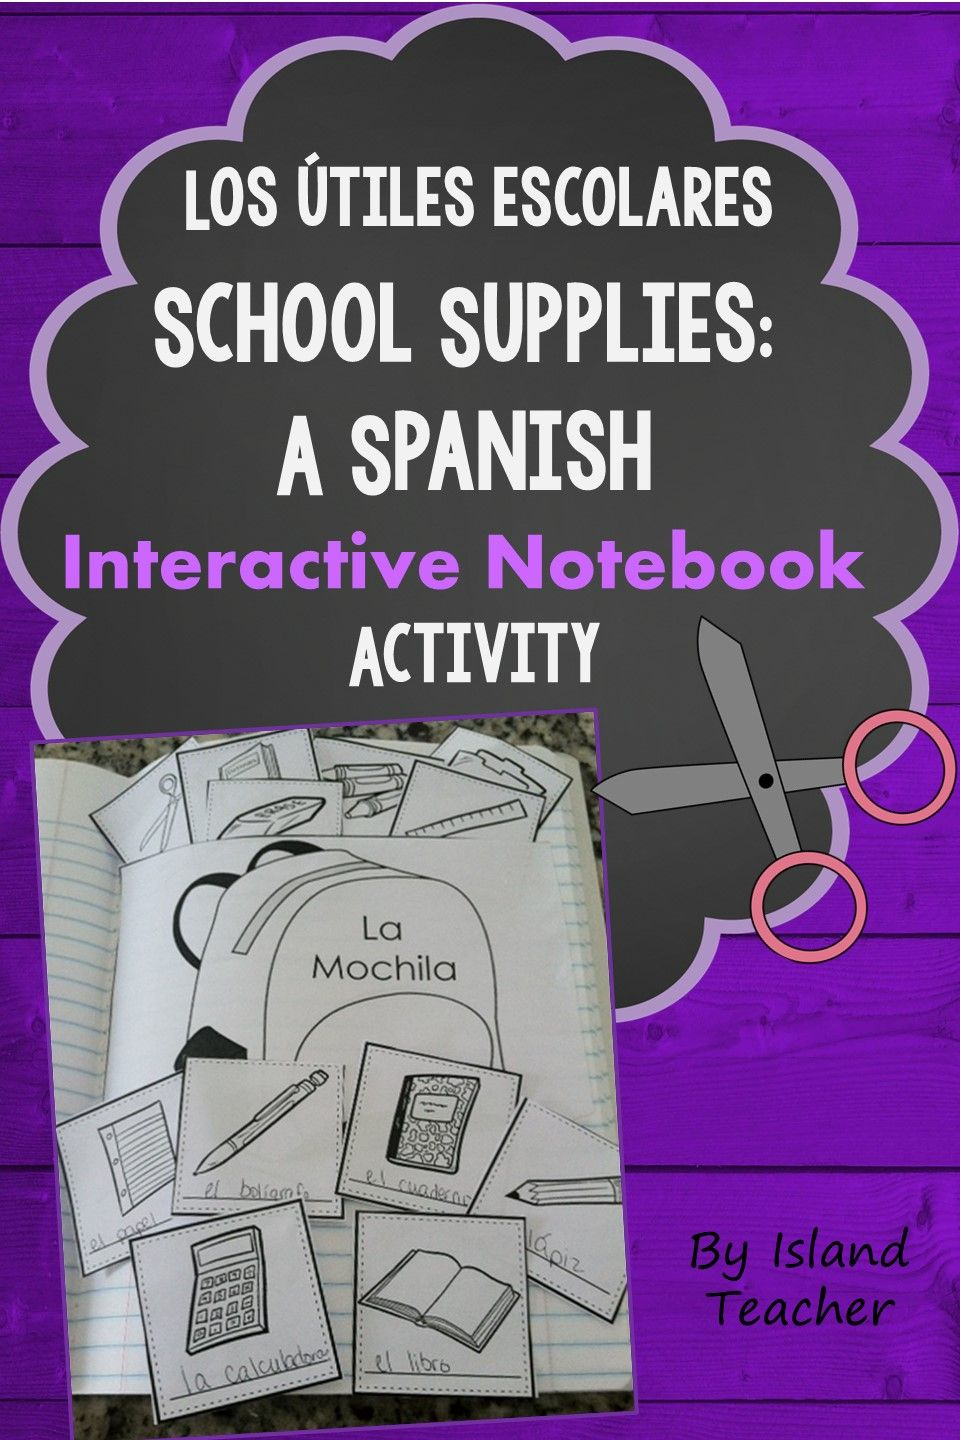 Students practice Spanish school supply vocabulary with this interactive notebook activity.